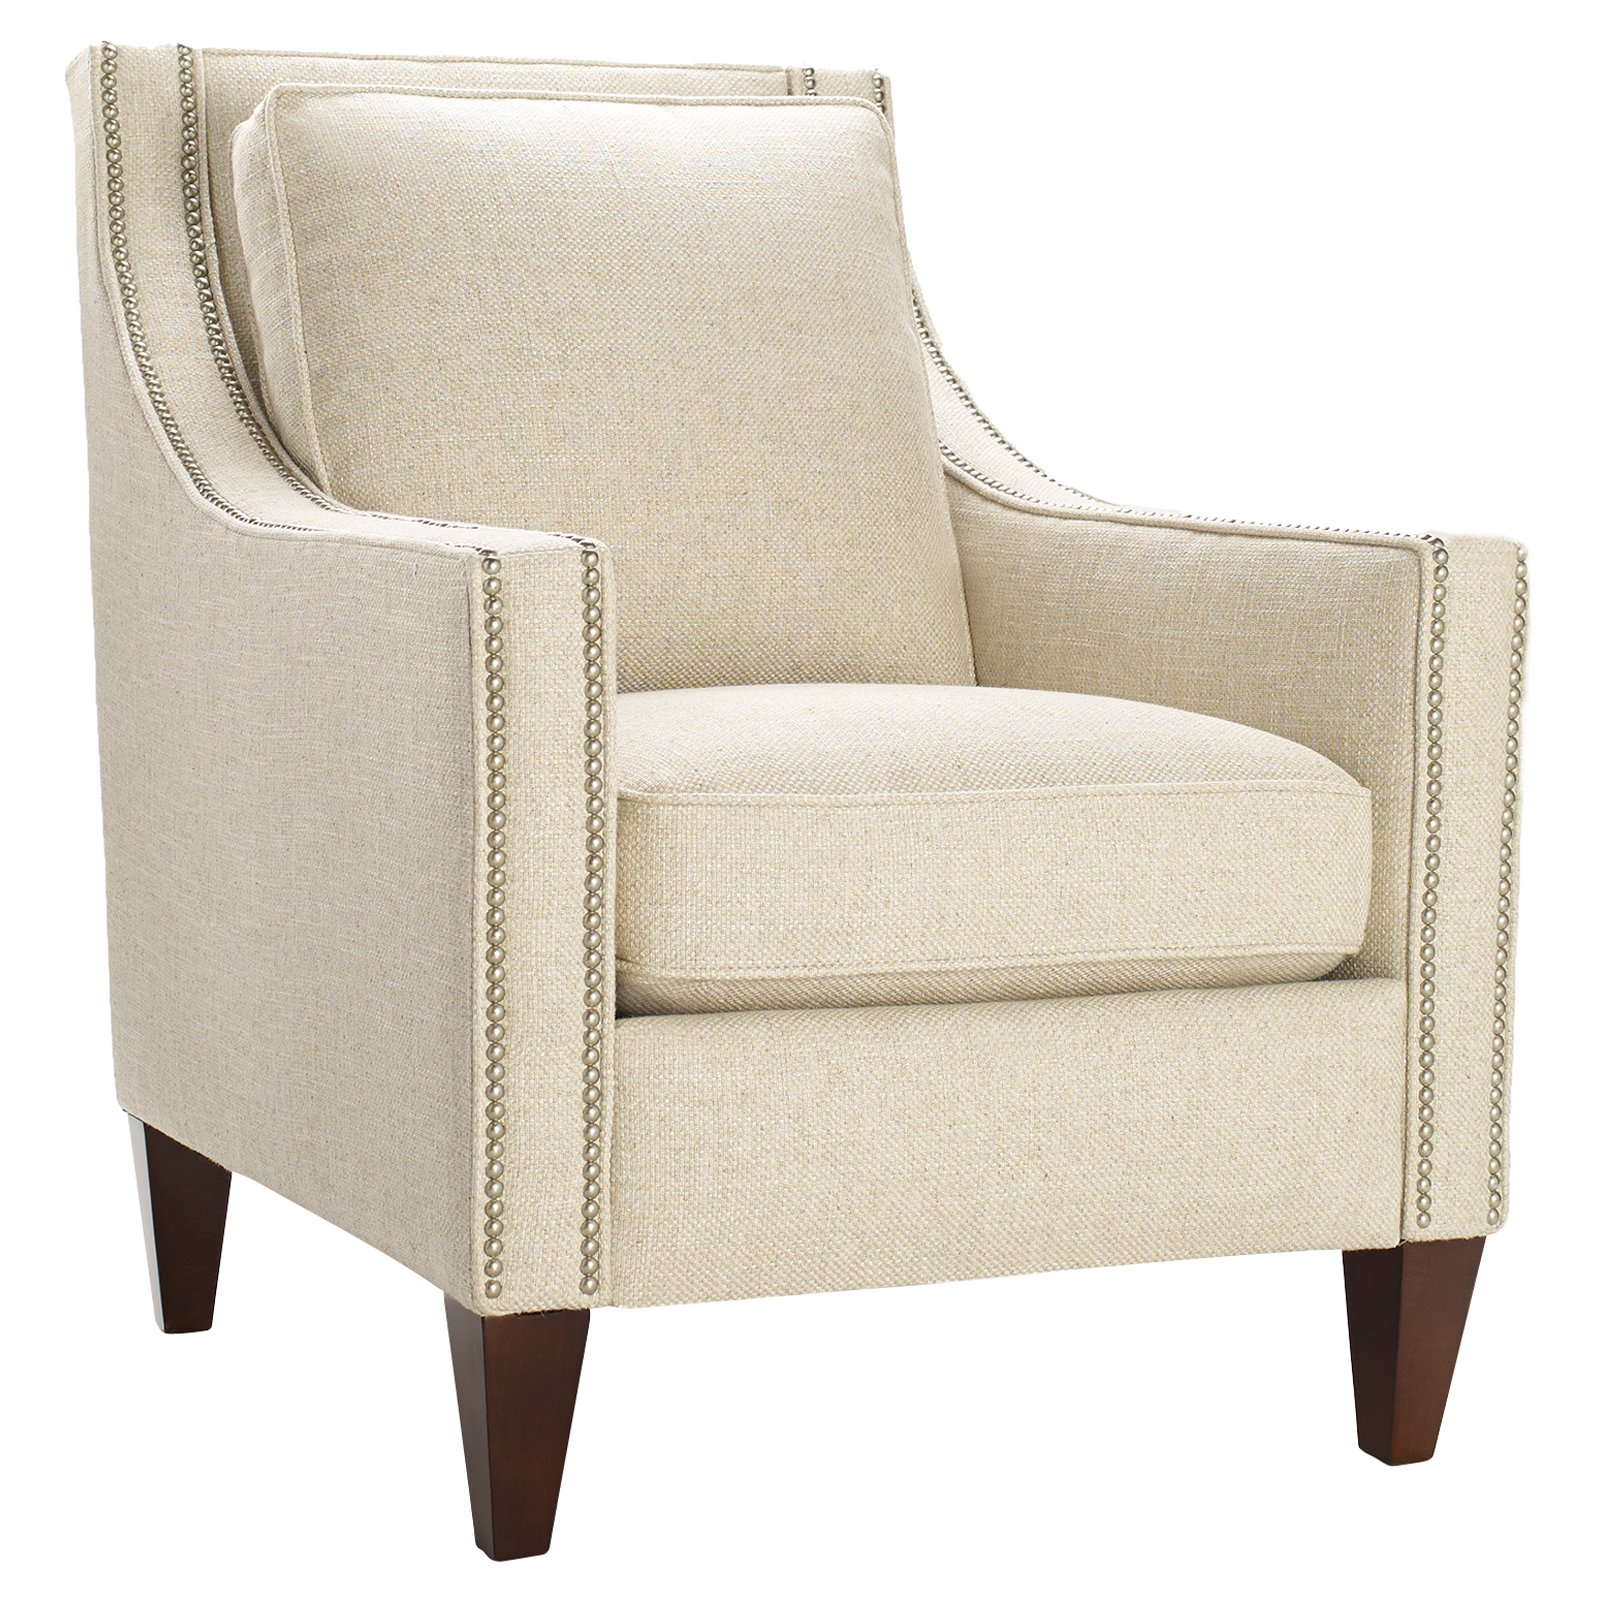 Cool accent chairs homesfeed for Living room chairs